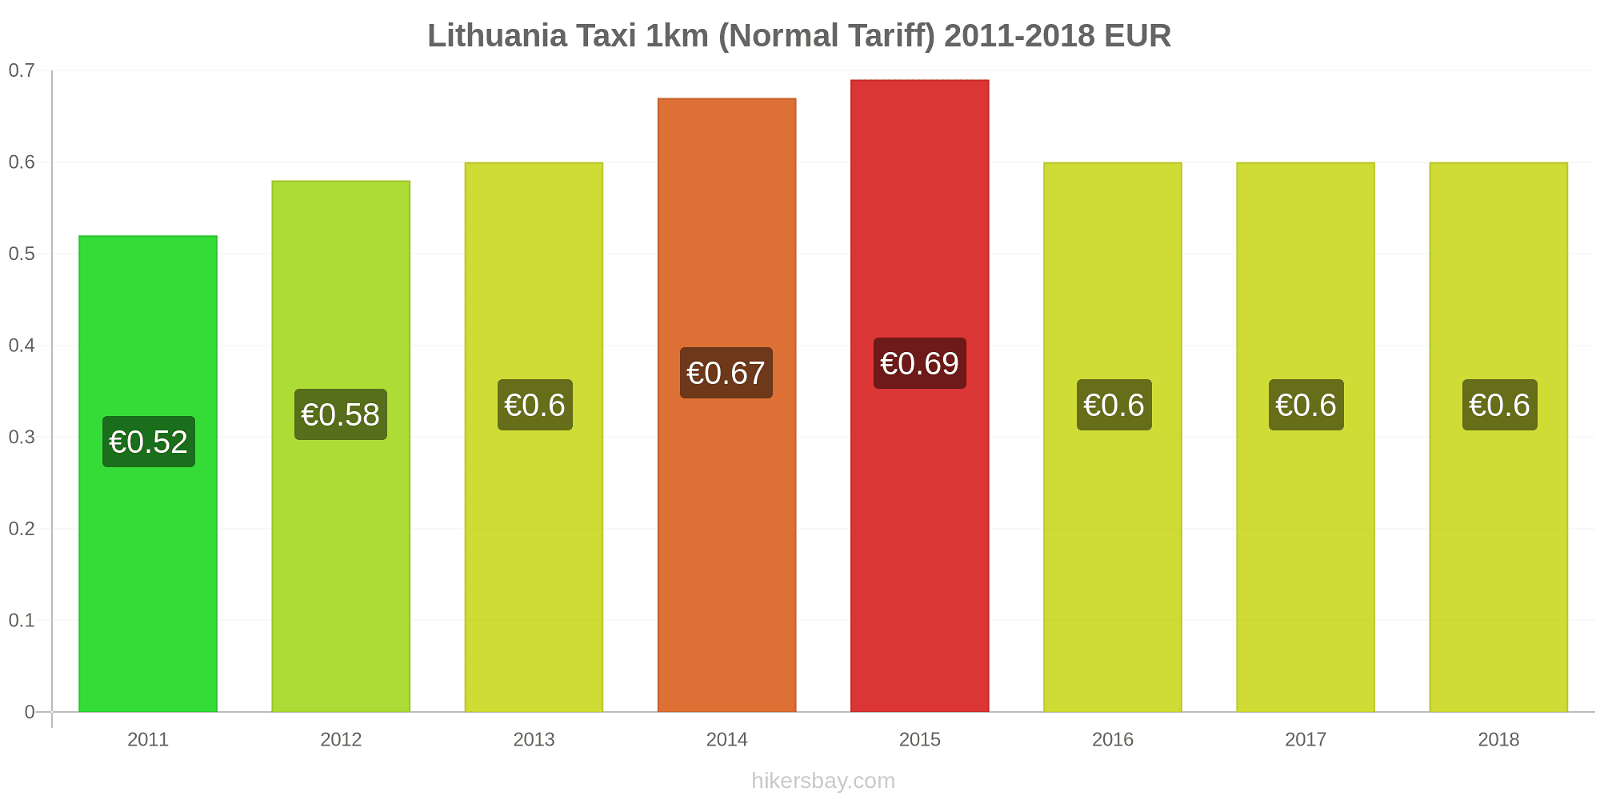 Lithuania price changes Taxi 1km (Normal Tariff) hikersbay.com